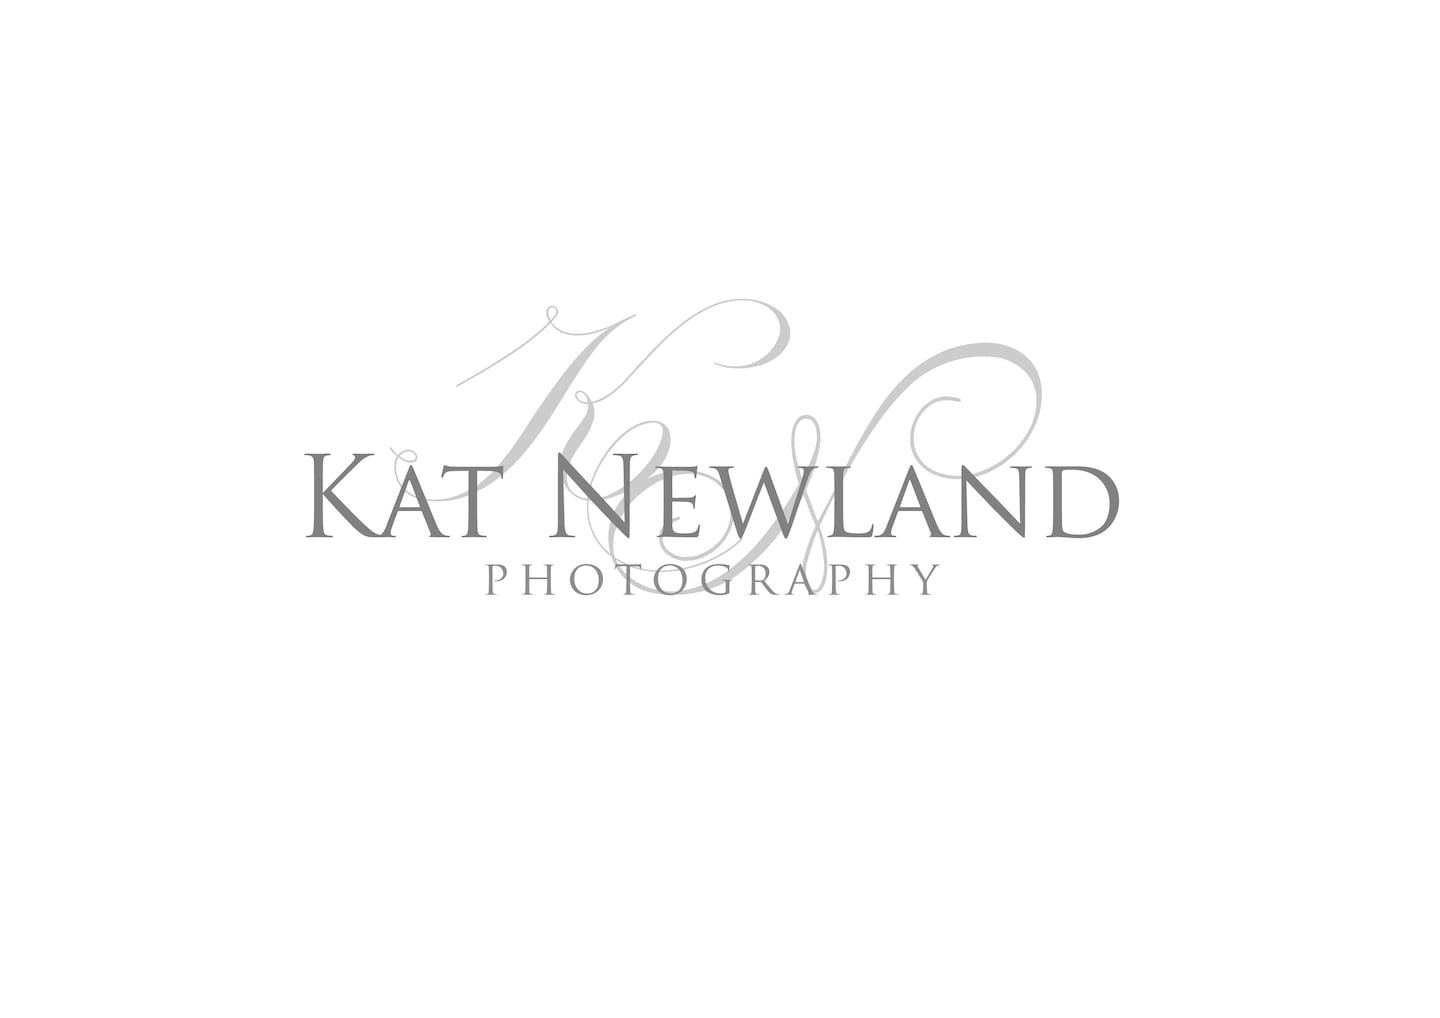 Kat Newland Photography